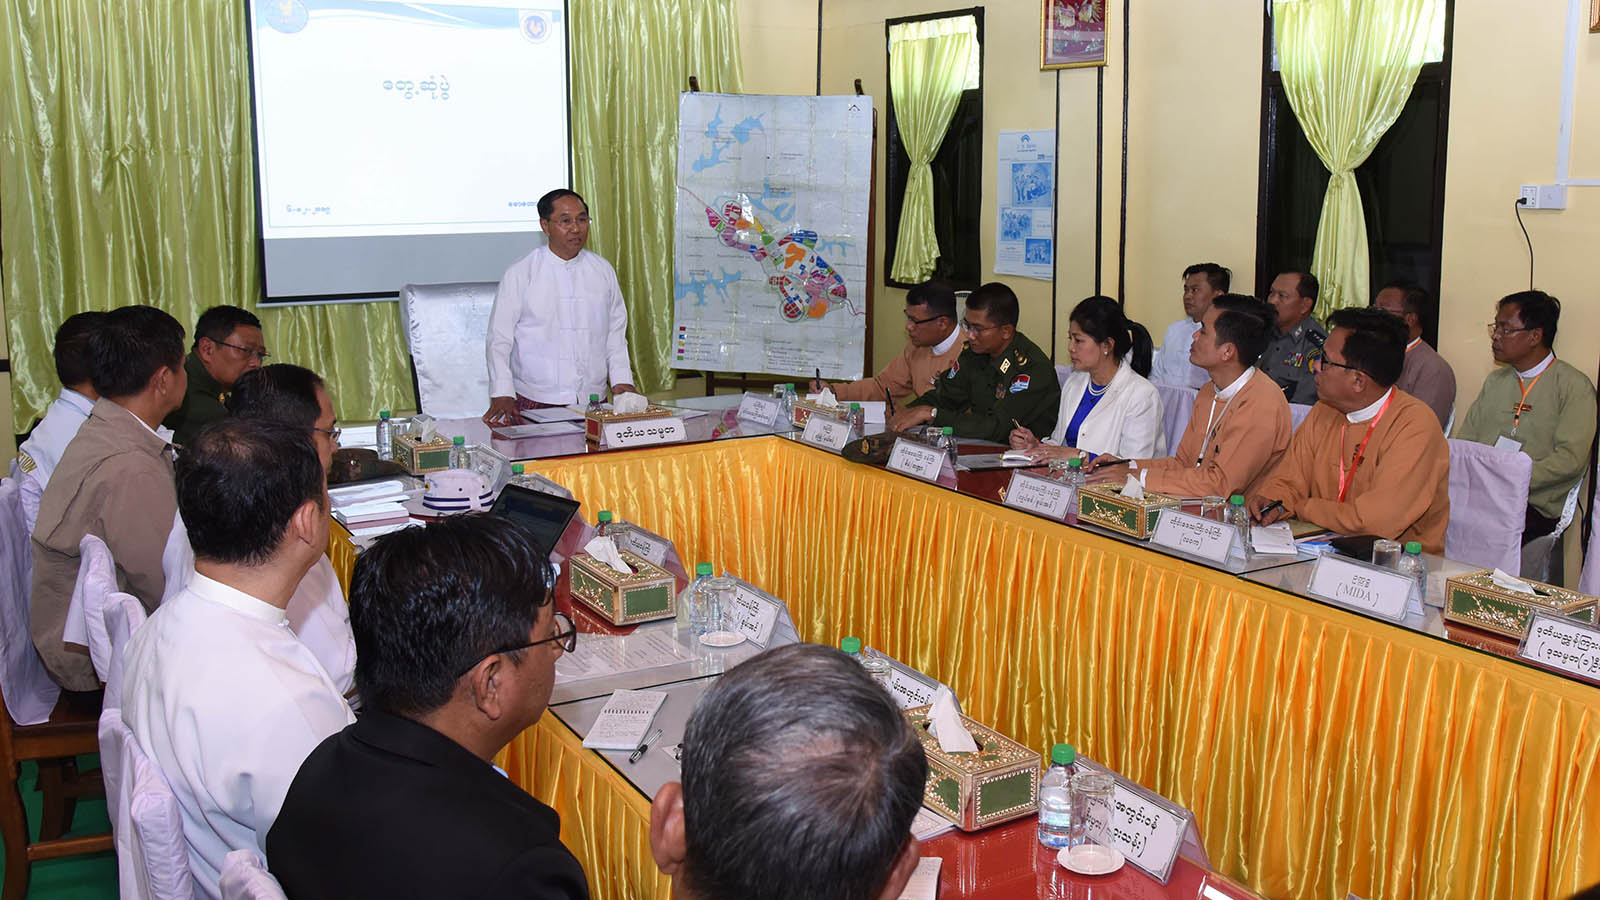 Vice President U Myint Swe delivers the speech during the meeting with the officials at the Mawtaung border trade centre in Taninthayi Township, Myeik District, yesterday.Photo: MNA